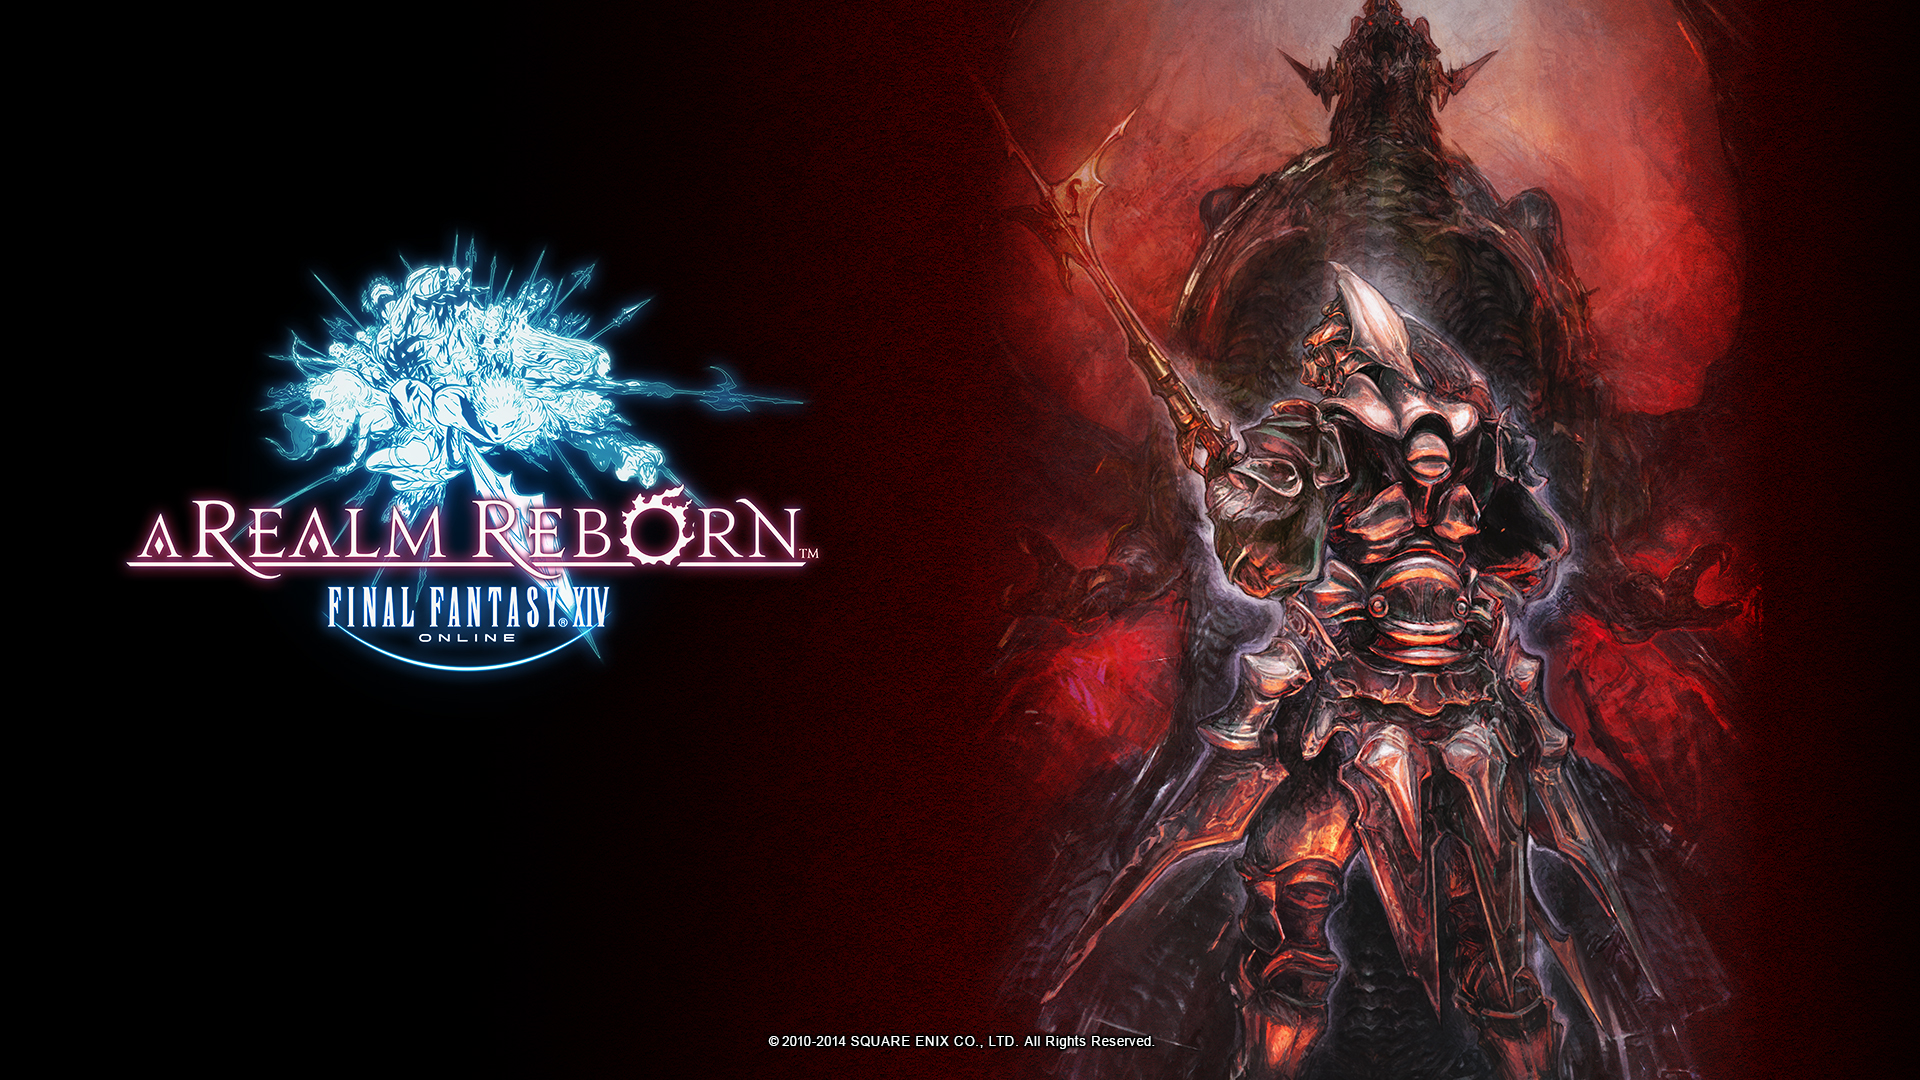 New final fantasy xiv a realm reborn wallpapers featuring gaius and square enix has released new amazing final fantasy xiv a realm reborn wallpapers this time they are featuring gaius and bahamut who are main villains in voltagebd Image collections